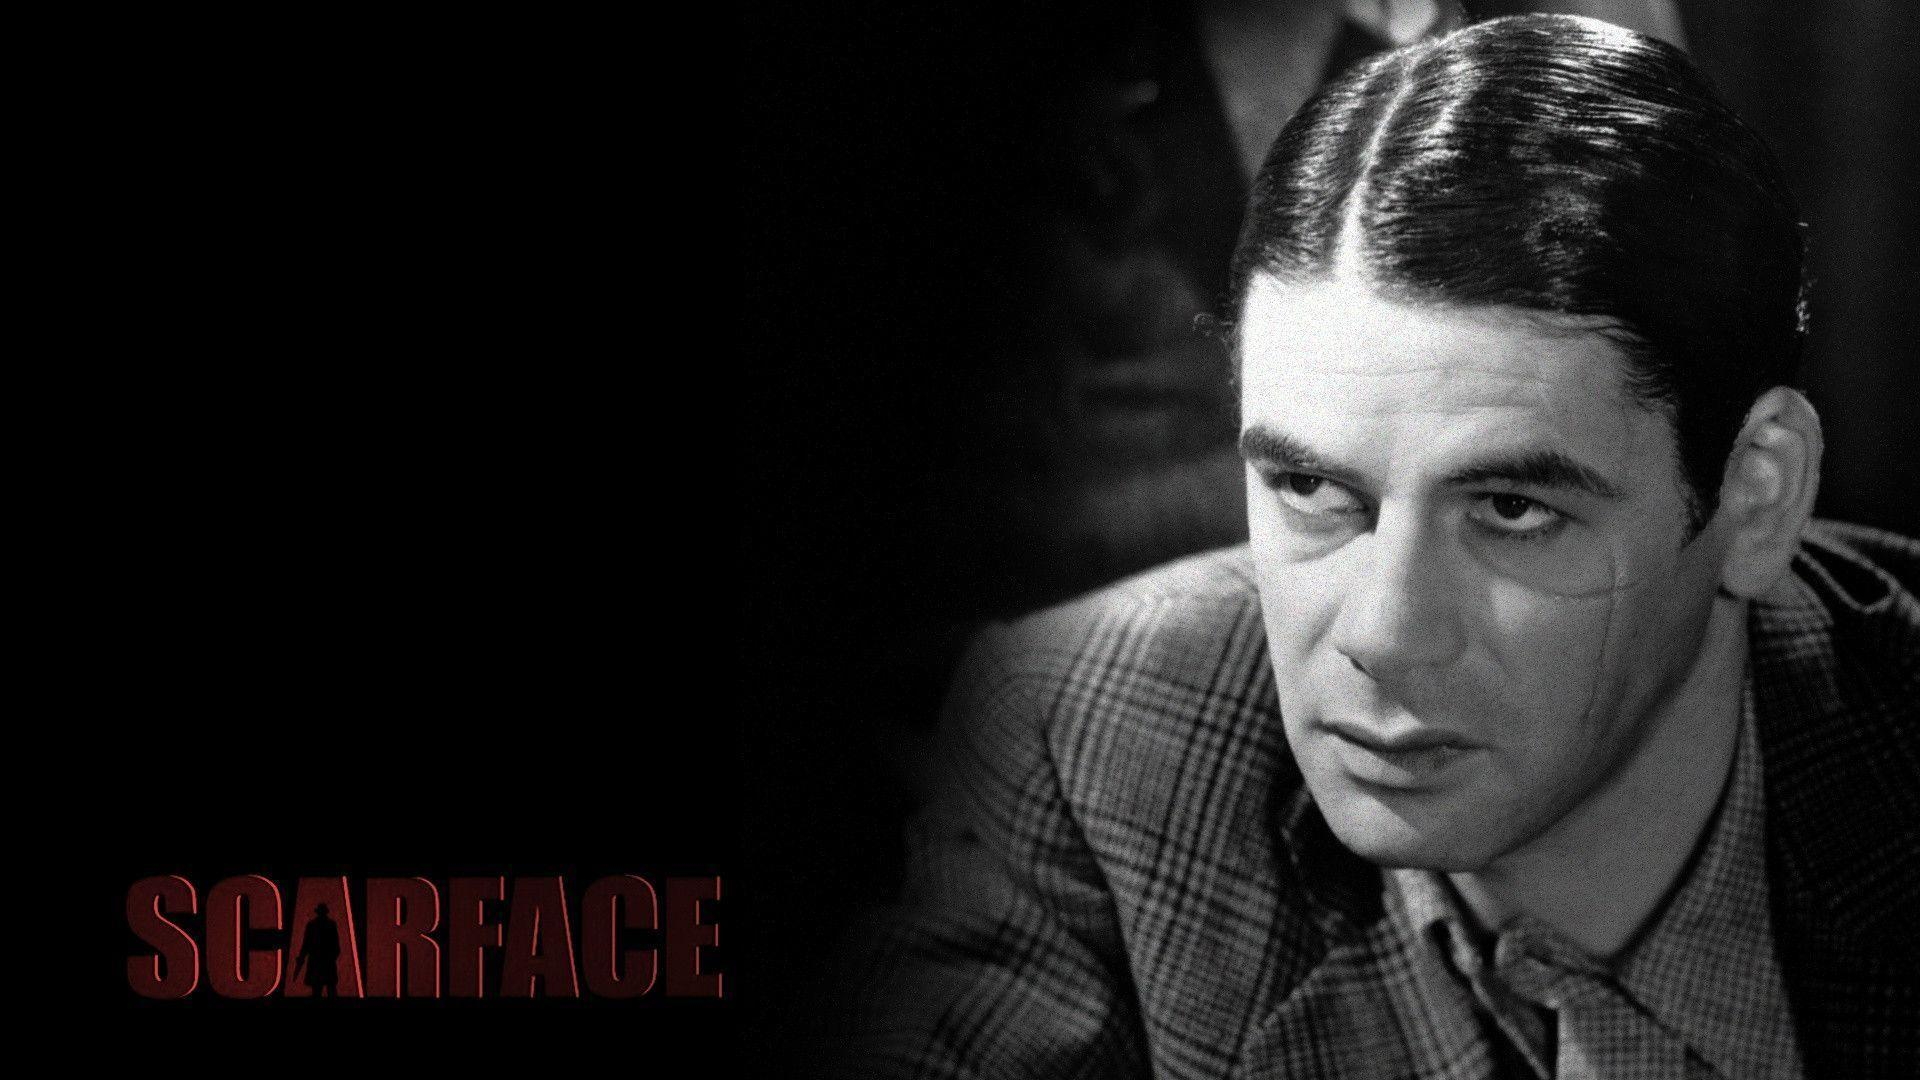 Scarface Wallpapers 1920x1080